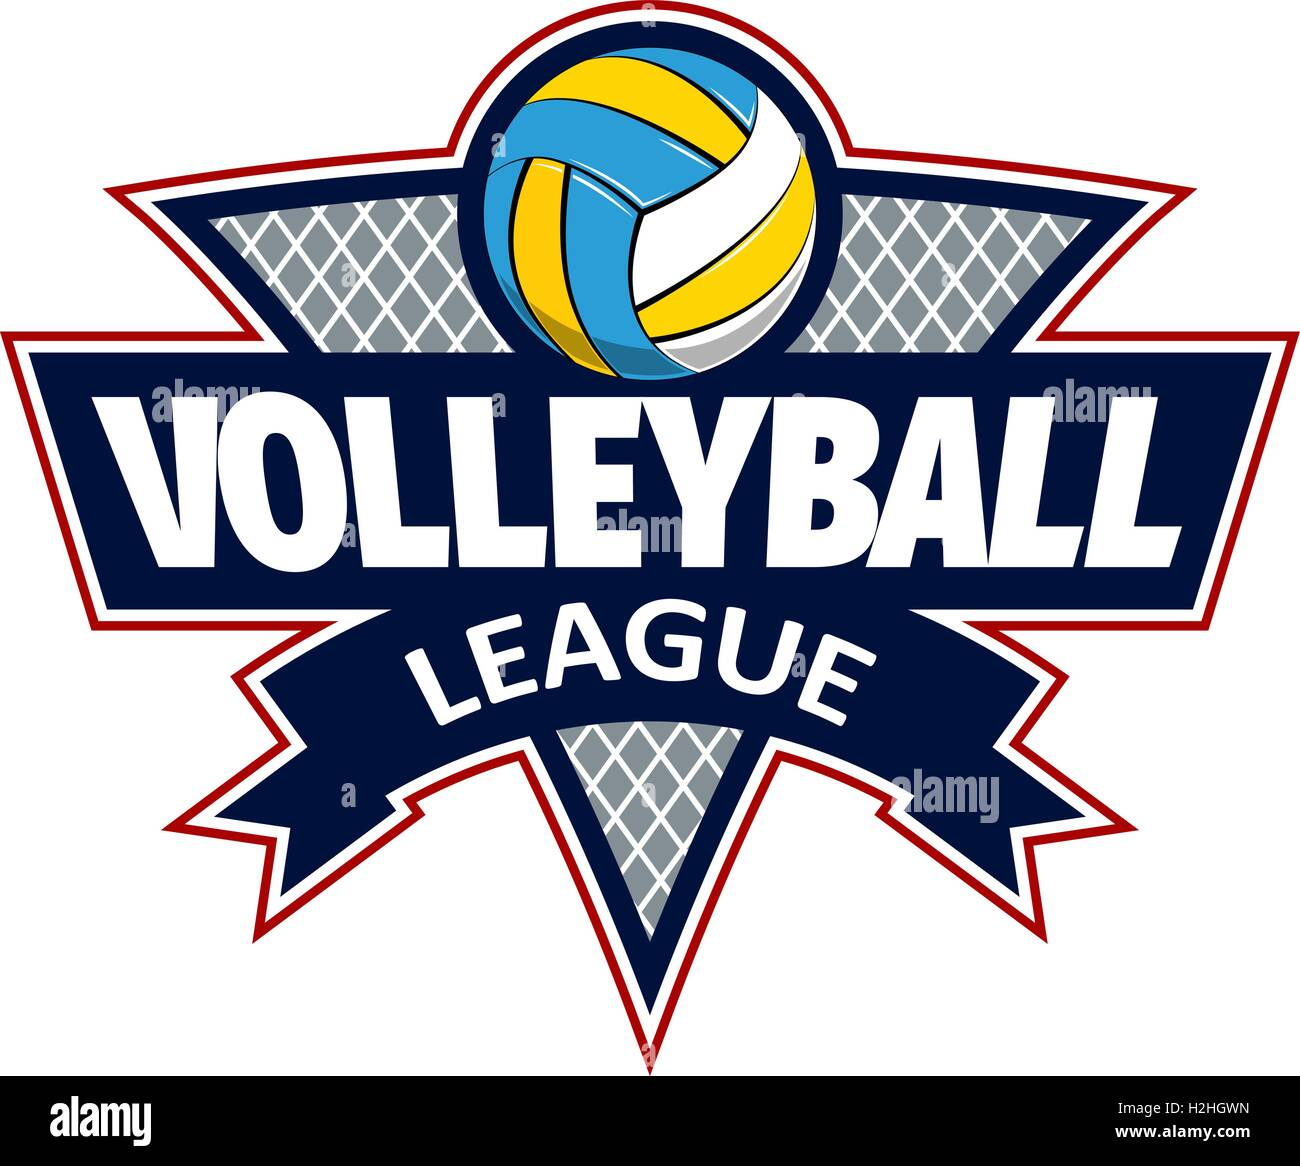 Volleyball Logo For The Team And The Cup Stock Vector Art